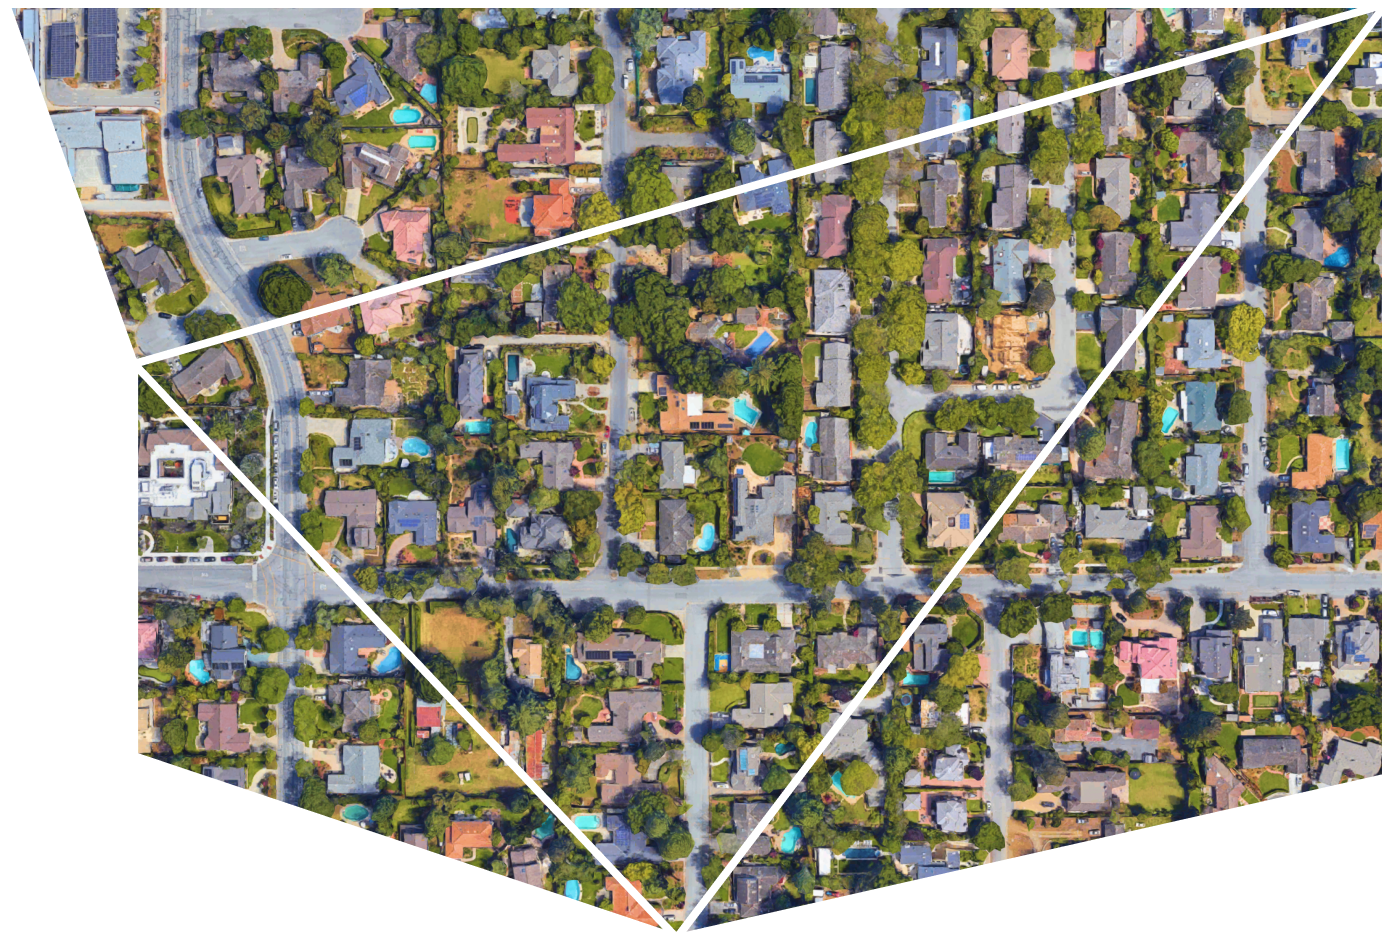 An aerial view of a suburban neightborhood with rooftops, deciduous trees, and backyard swimming pools.